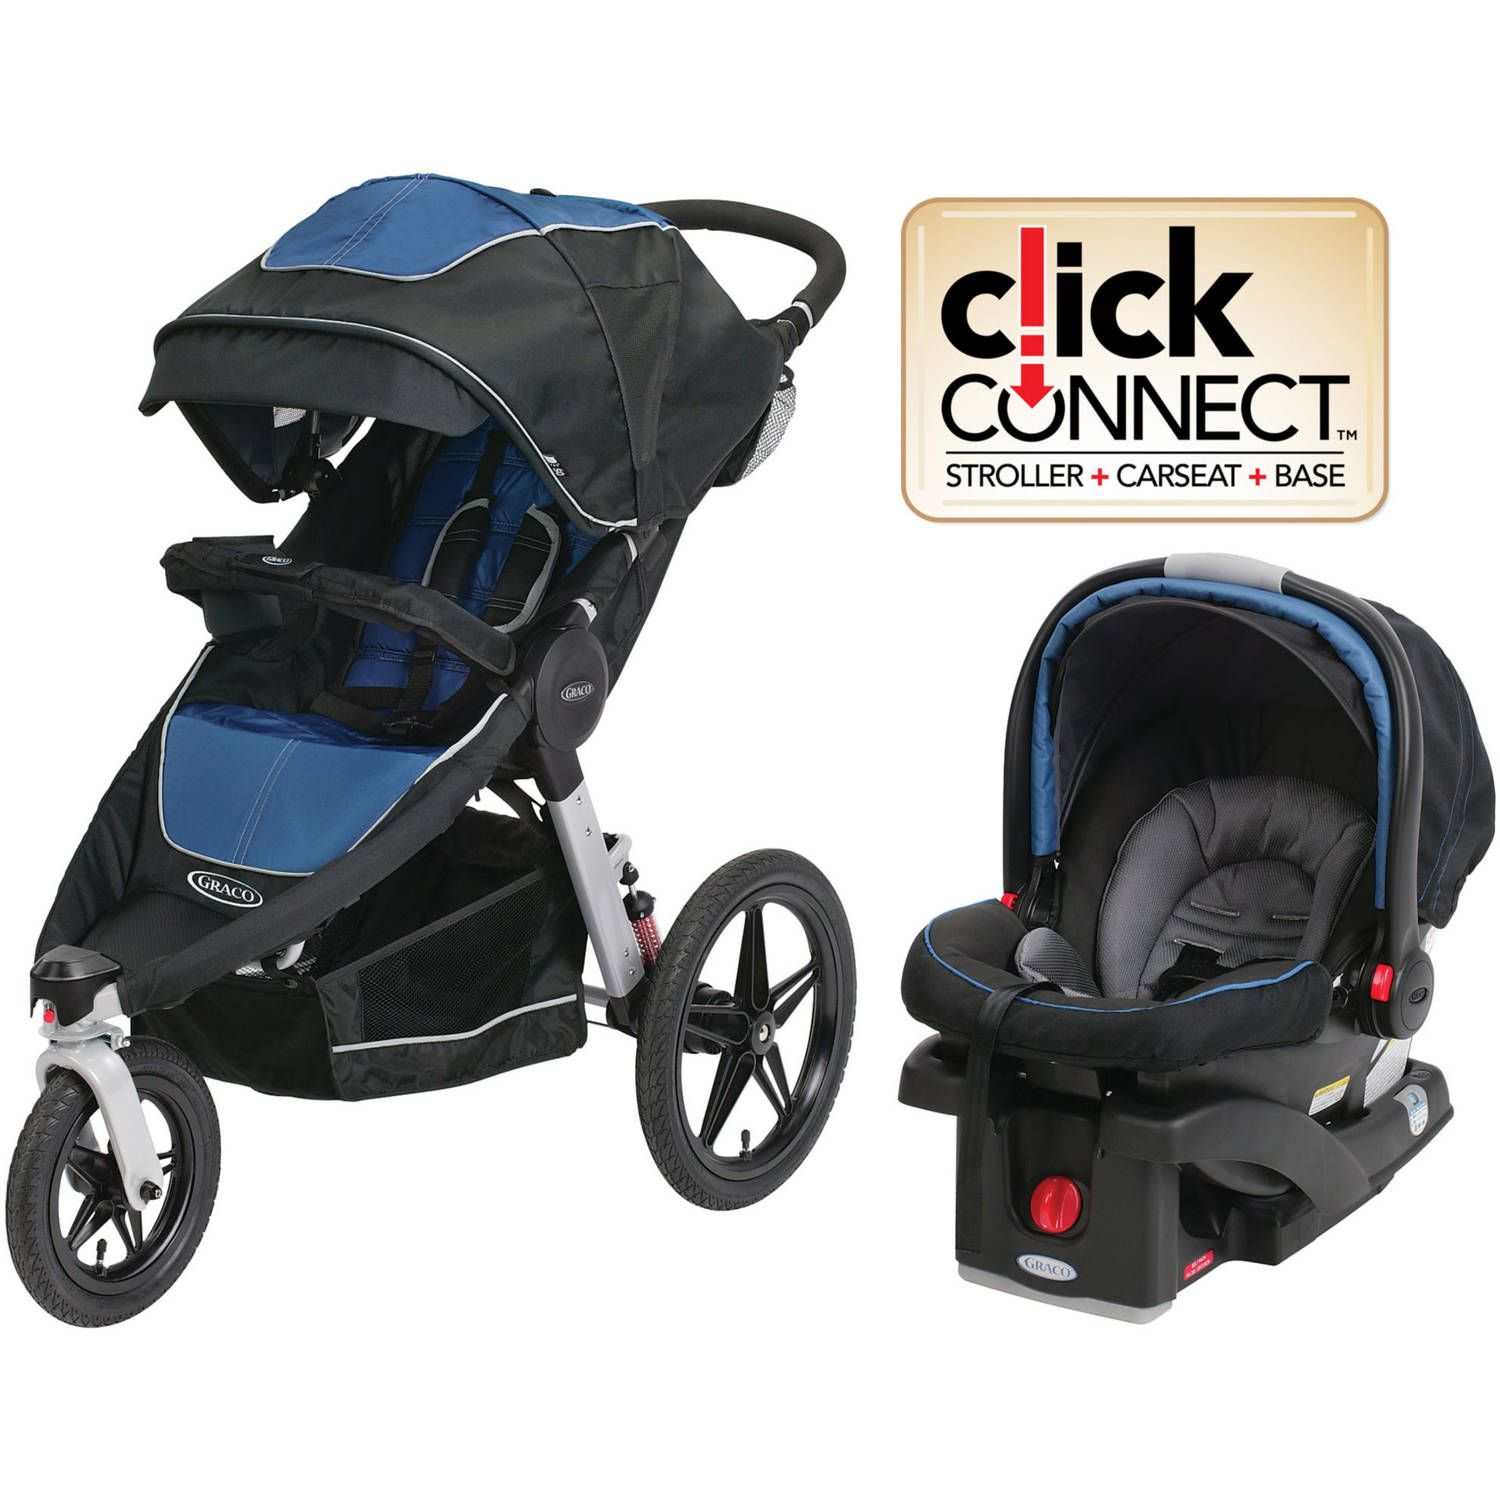 Graco Relay Click Connect Travel System Car Seat Stroller